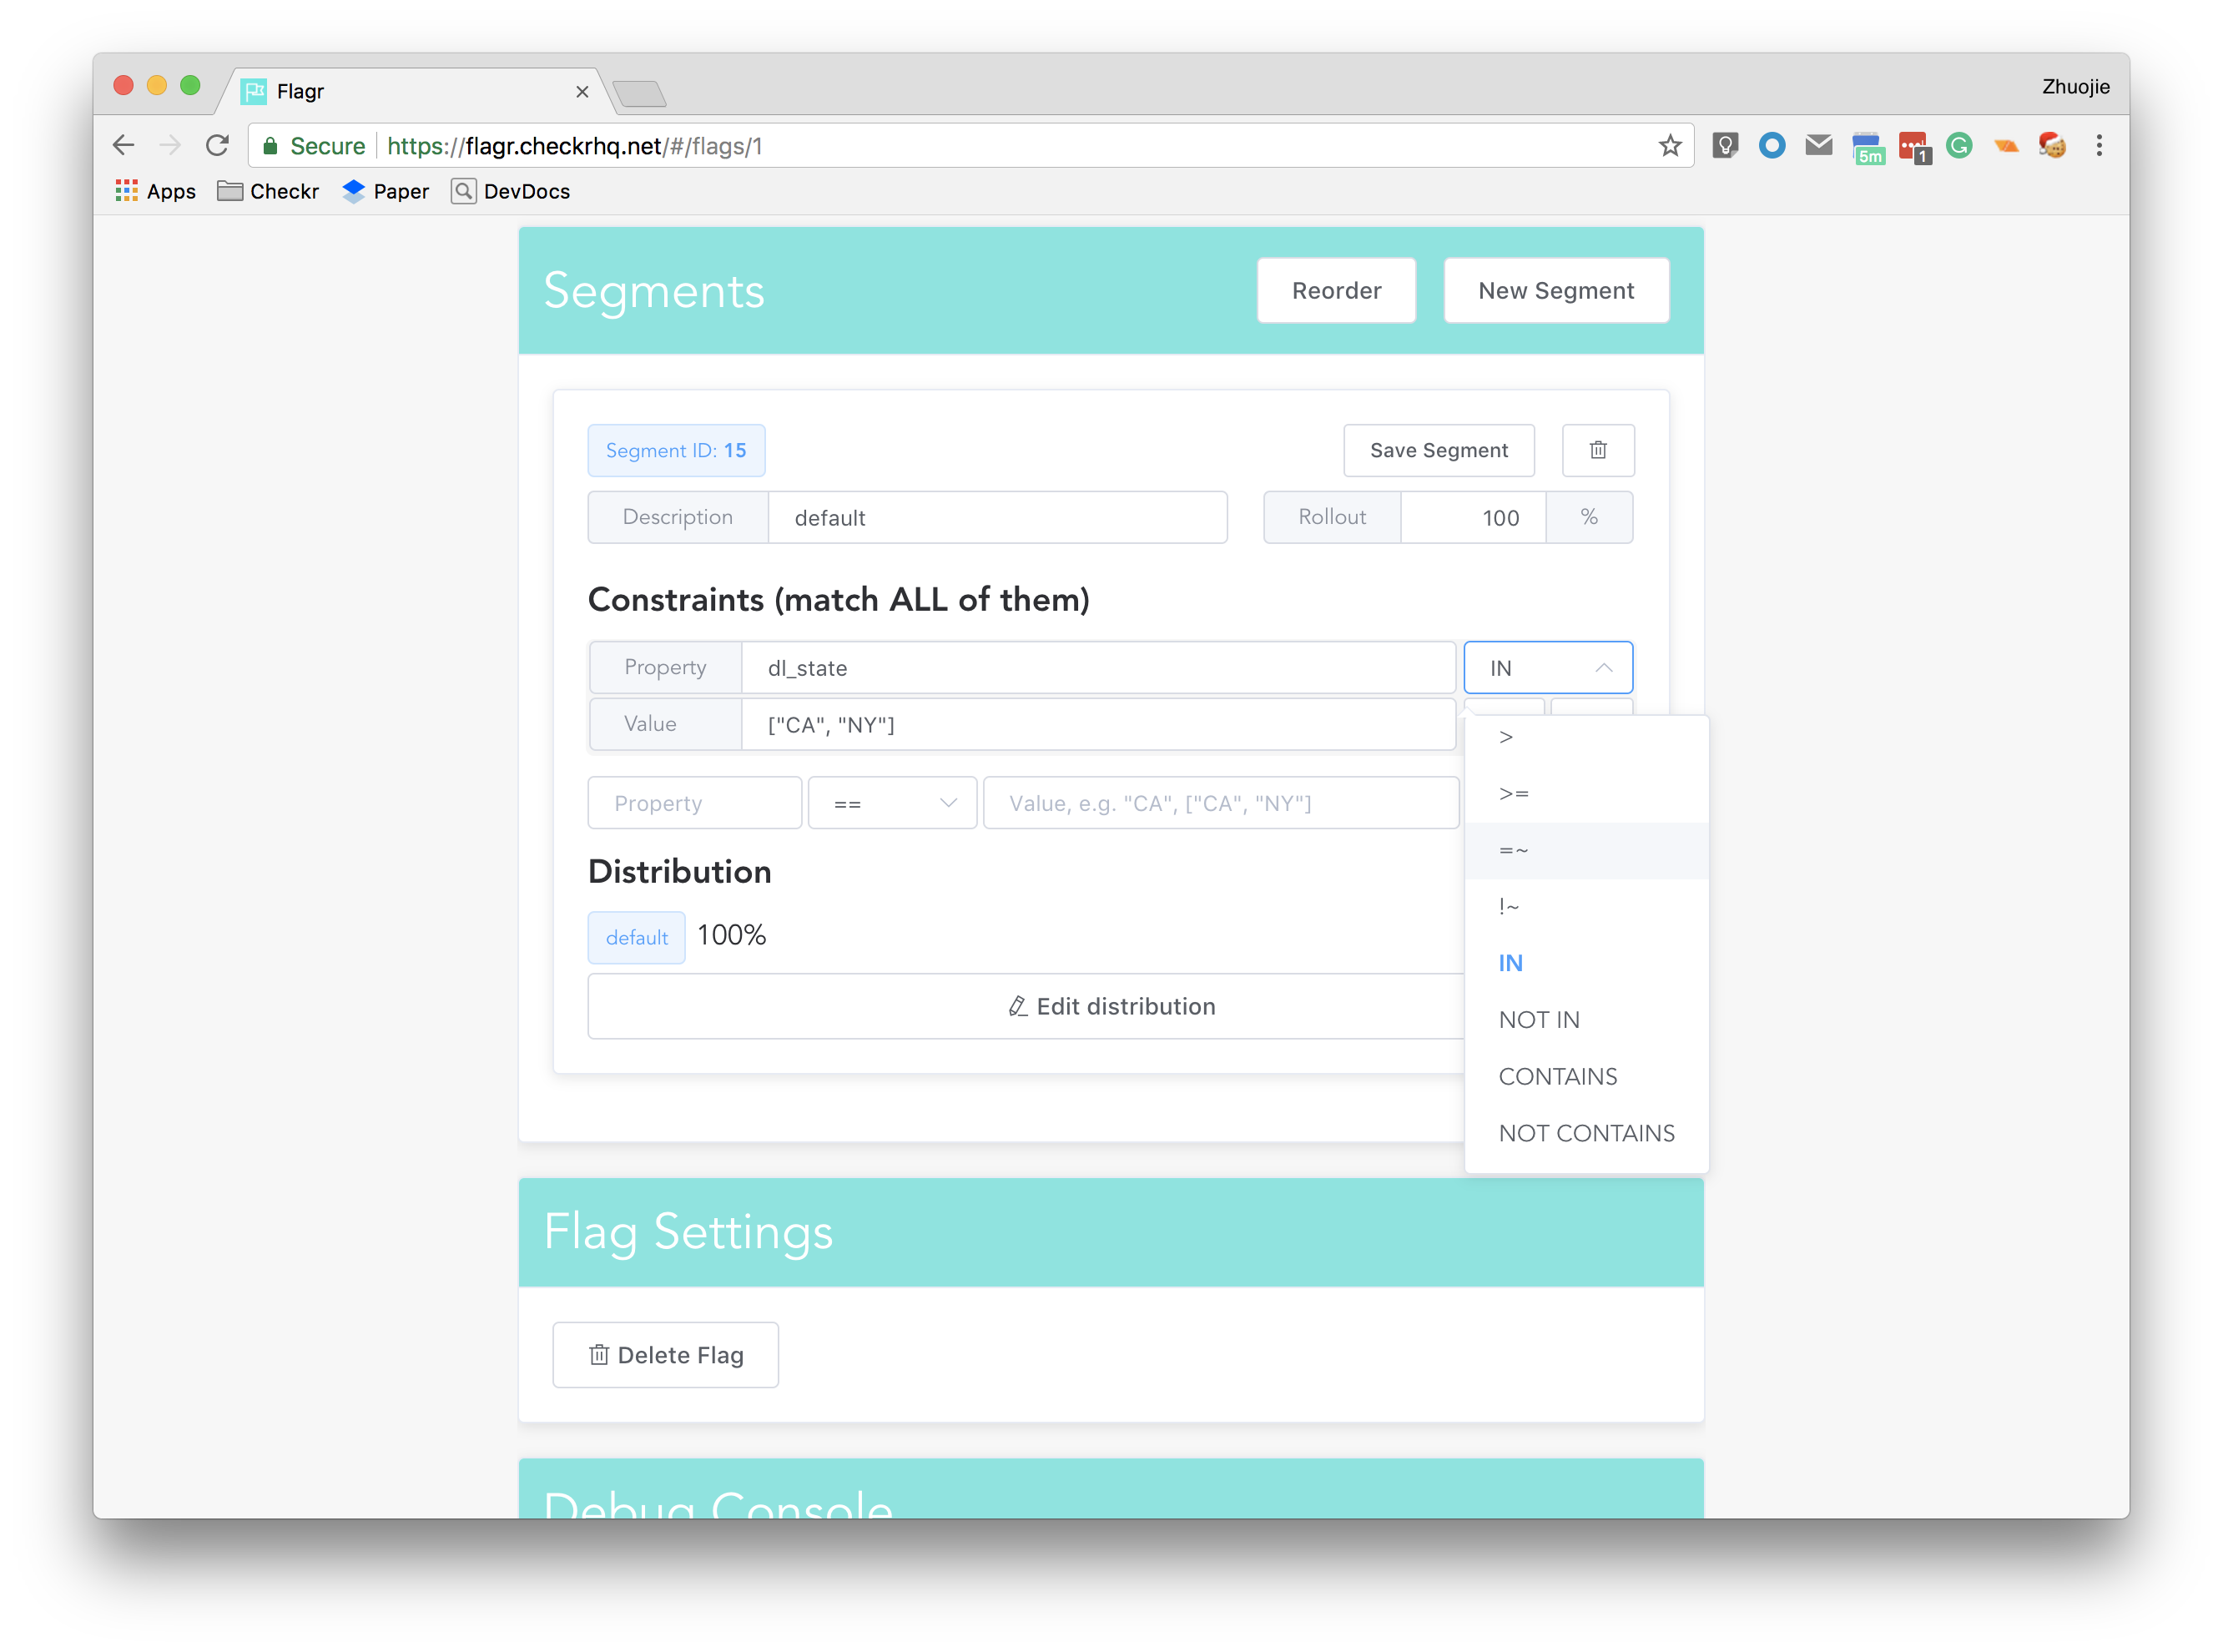 Introducing Flagr: A robust, high-performance service for